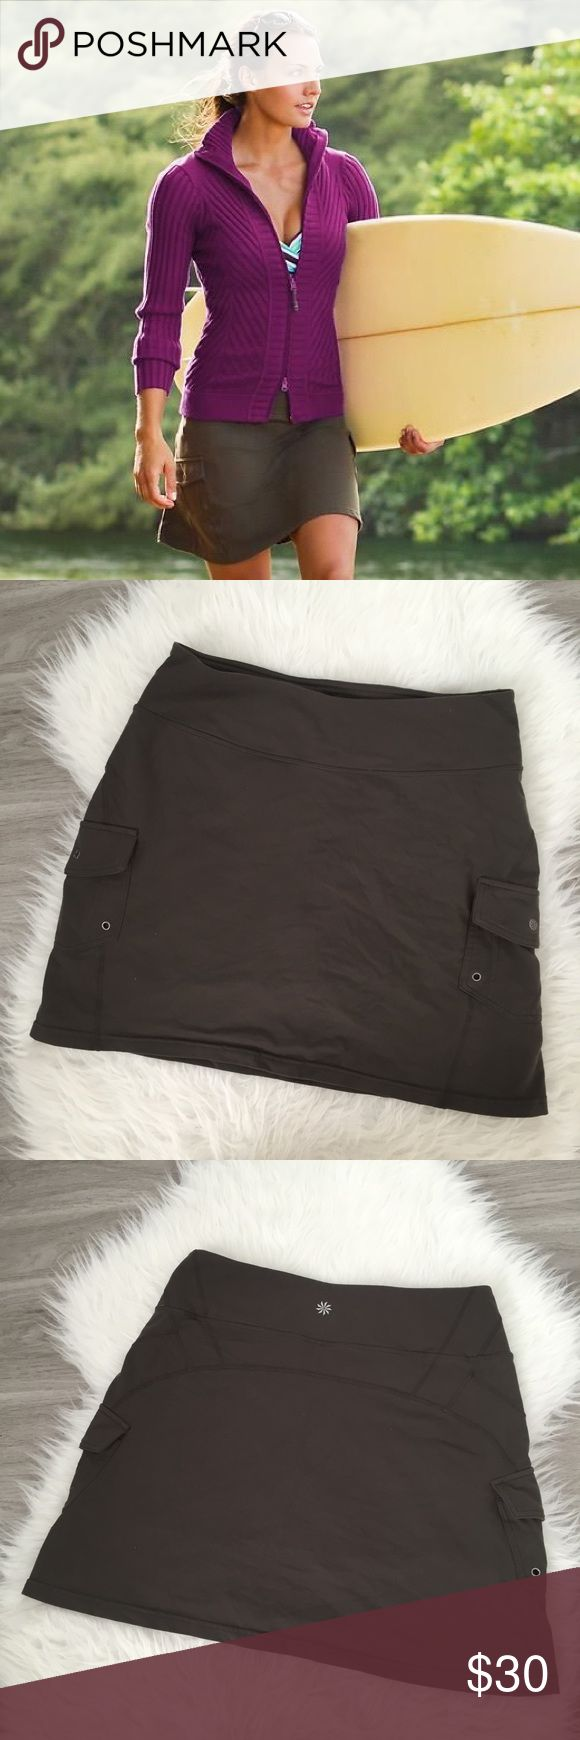 Athleta Oasis Skort Olive Green w Pockets Size M  Waist: 15in flat Length: 16in flat Stretchy and very comfortable! Has shorts underneath for coverage.   Athleta Oasis Skort  Athleta Oasis Skort ($64): moisture-wicking with CoolMax technology, the Oasis skort is also made with built-in UPF 50+ sun protection Athleta Skirts Mini